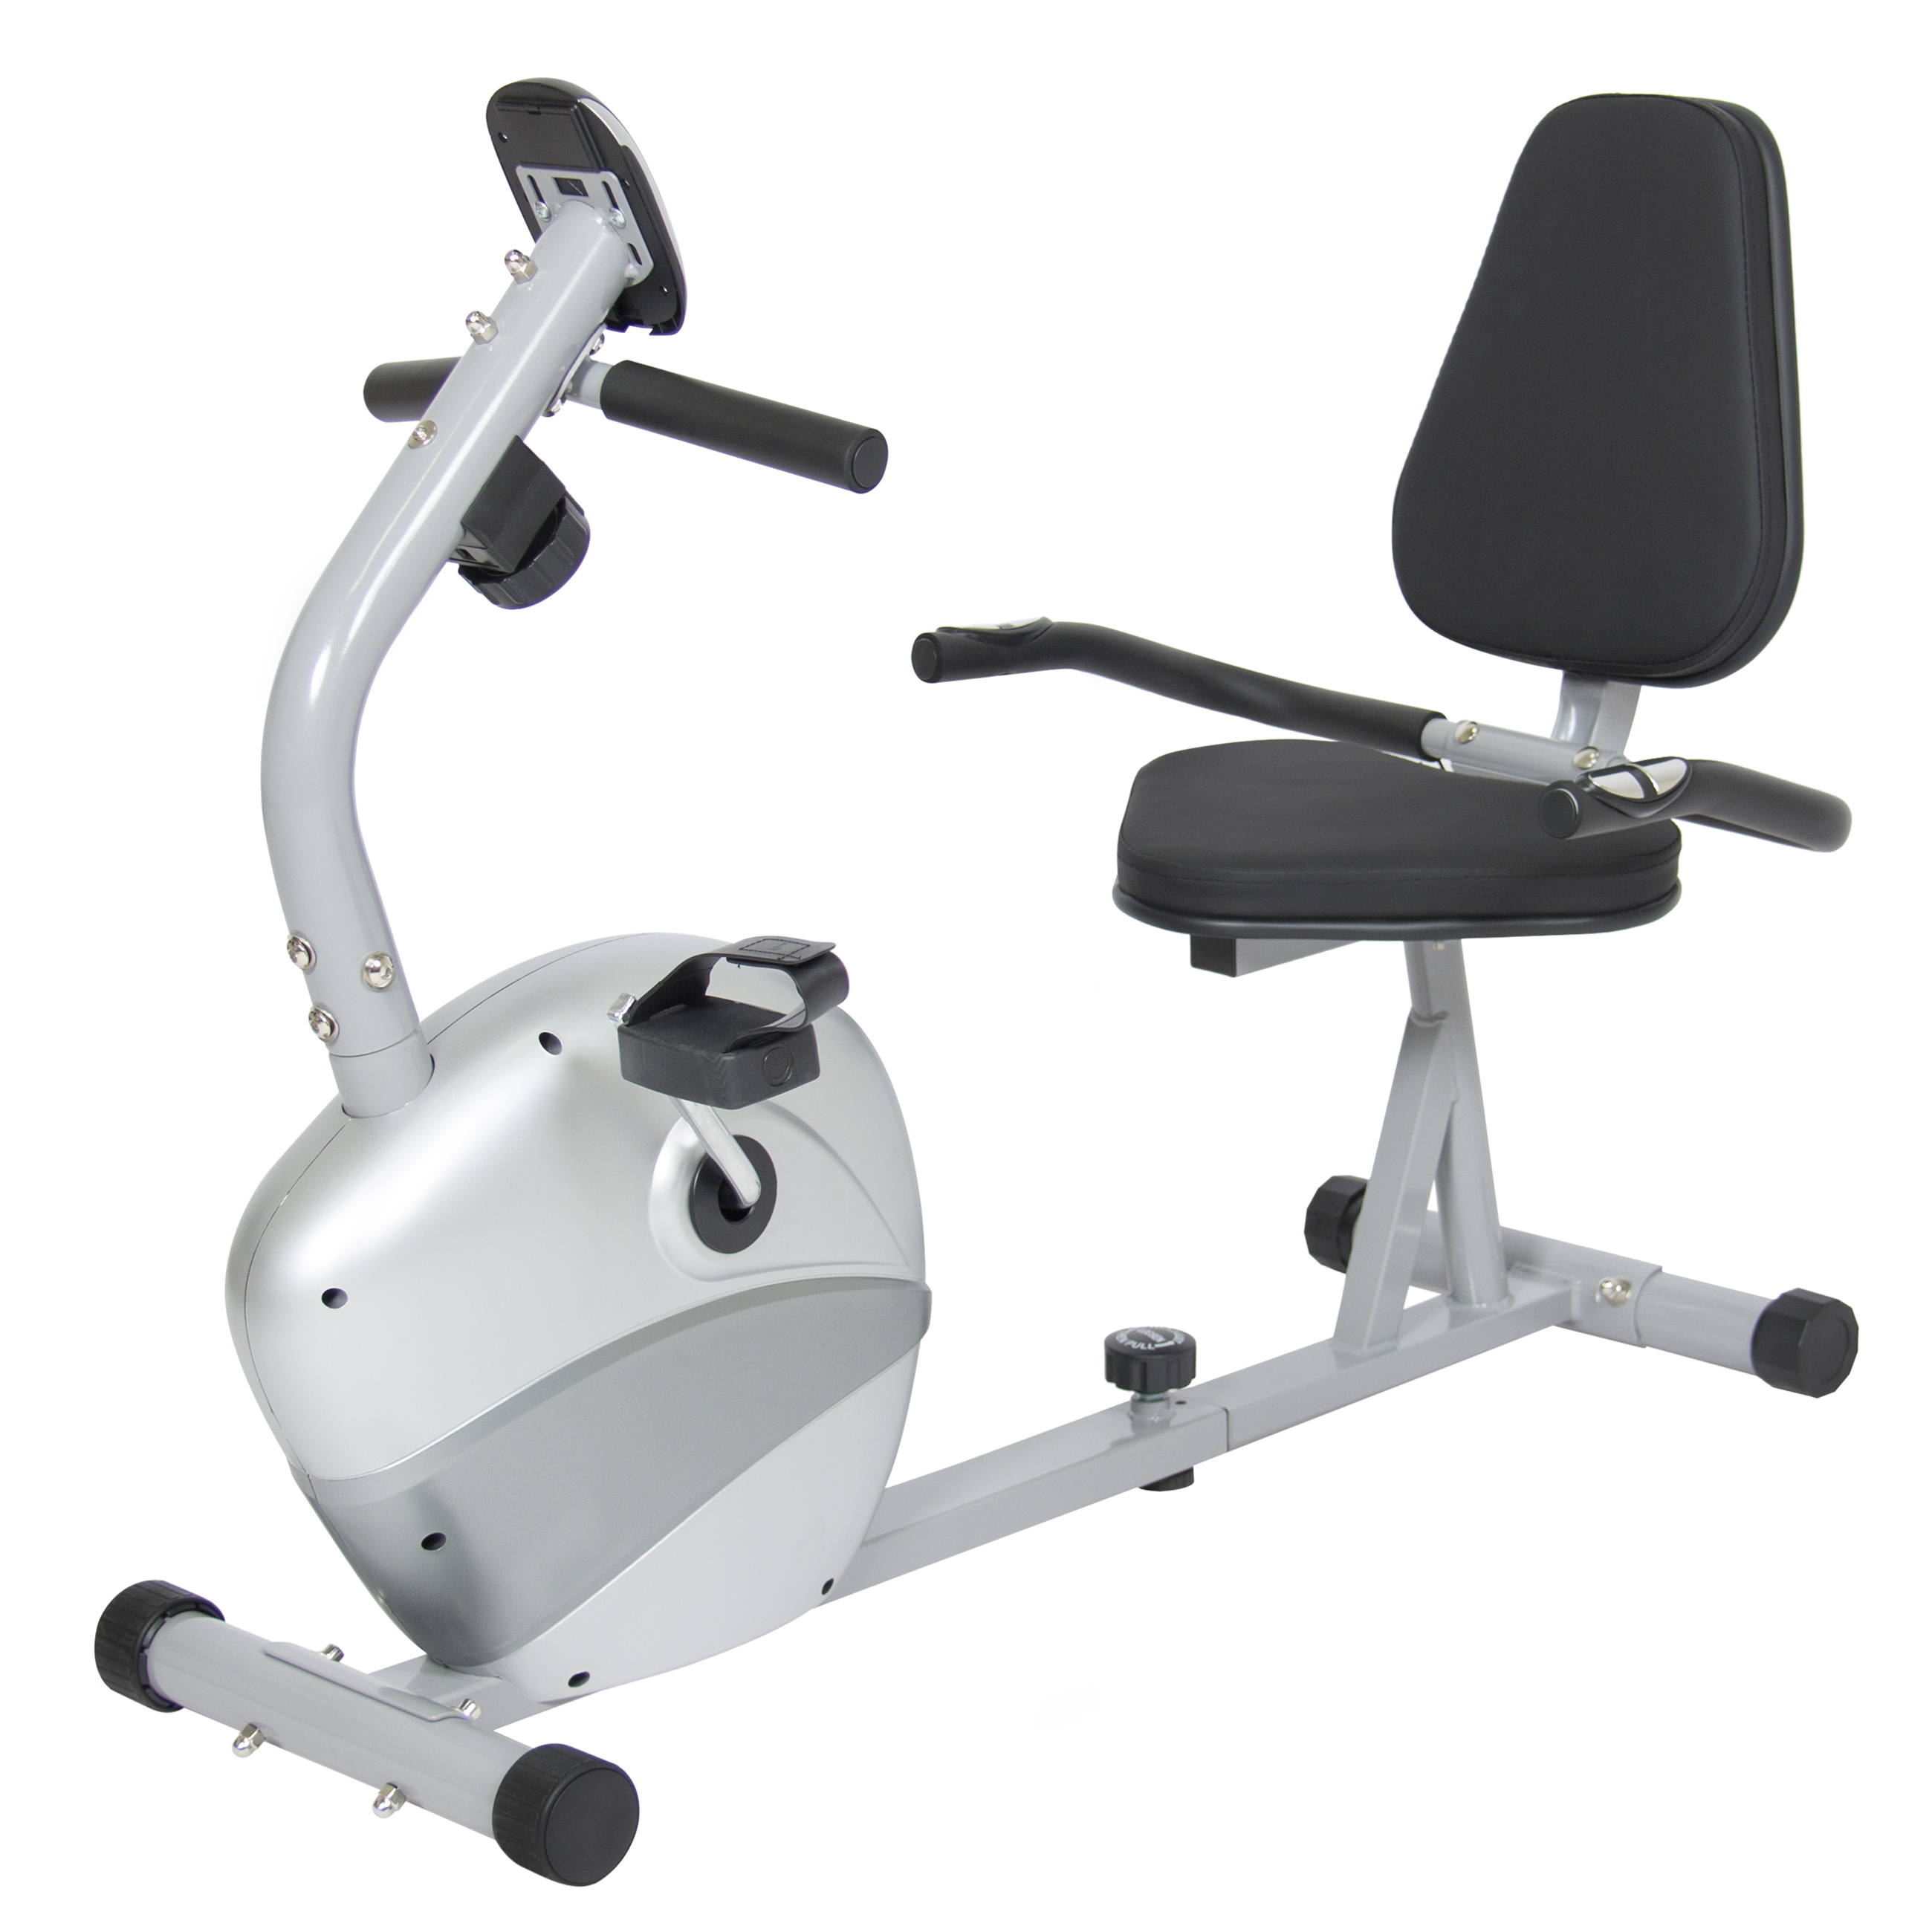 Best Choice Products Stationary Recumbent Exercise Bike Cardio Fitness Equipment by Best Choice Products